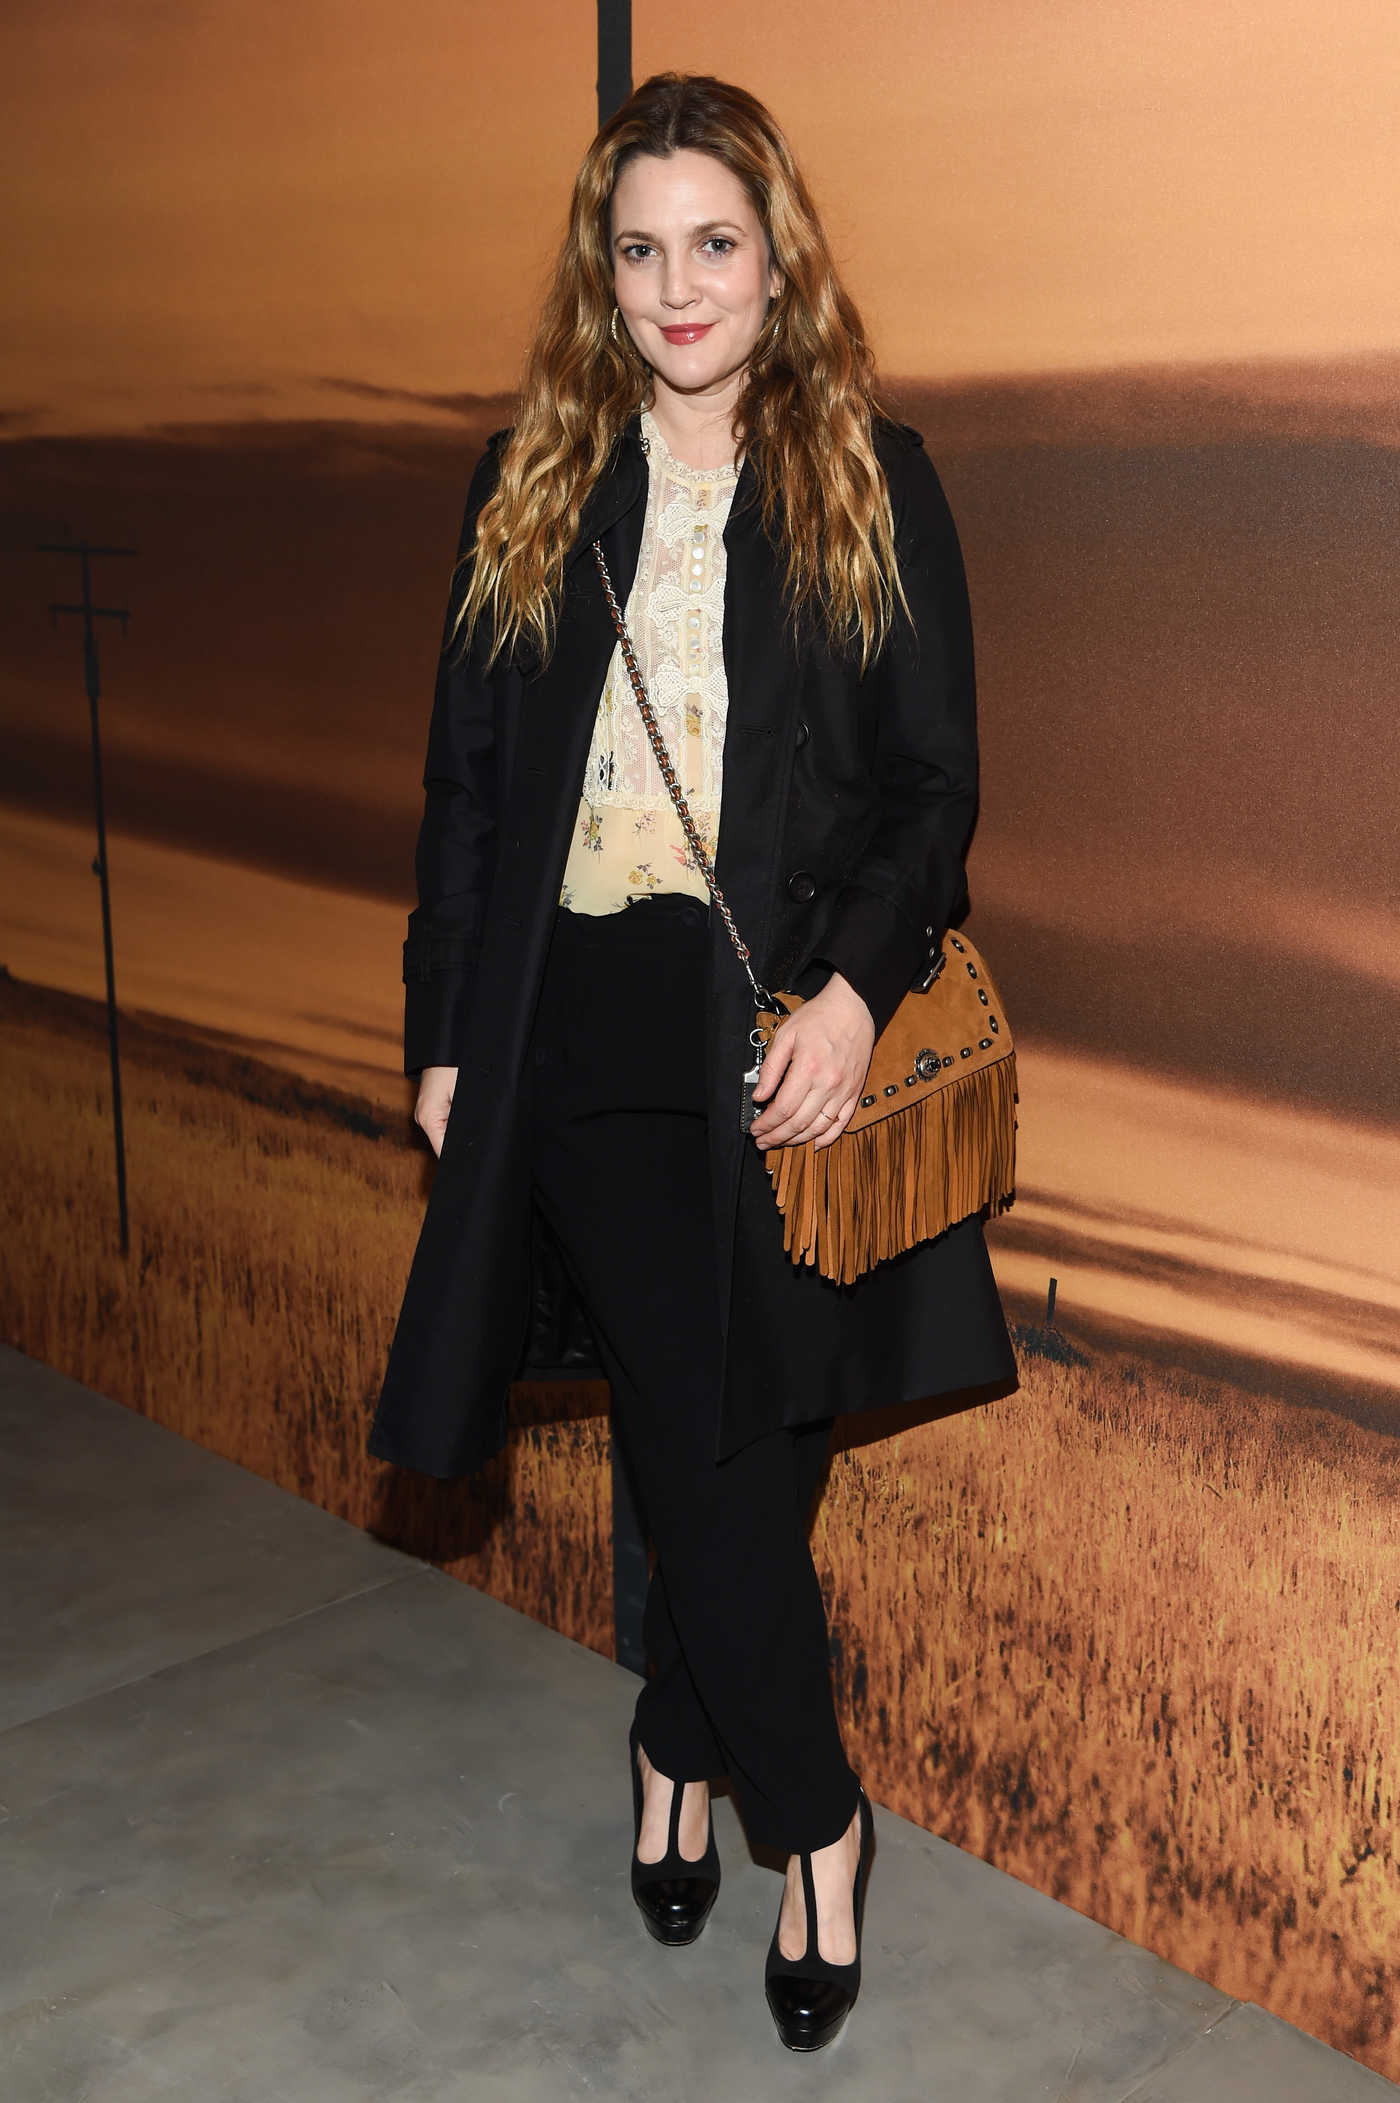 Drew Barrymore at the 2017 Coach Fashion Show During the New York Fashion Week 02/14/2017